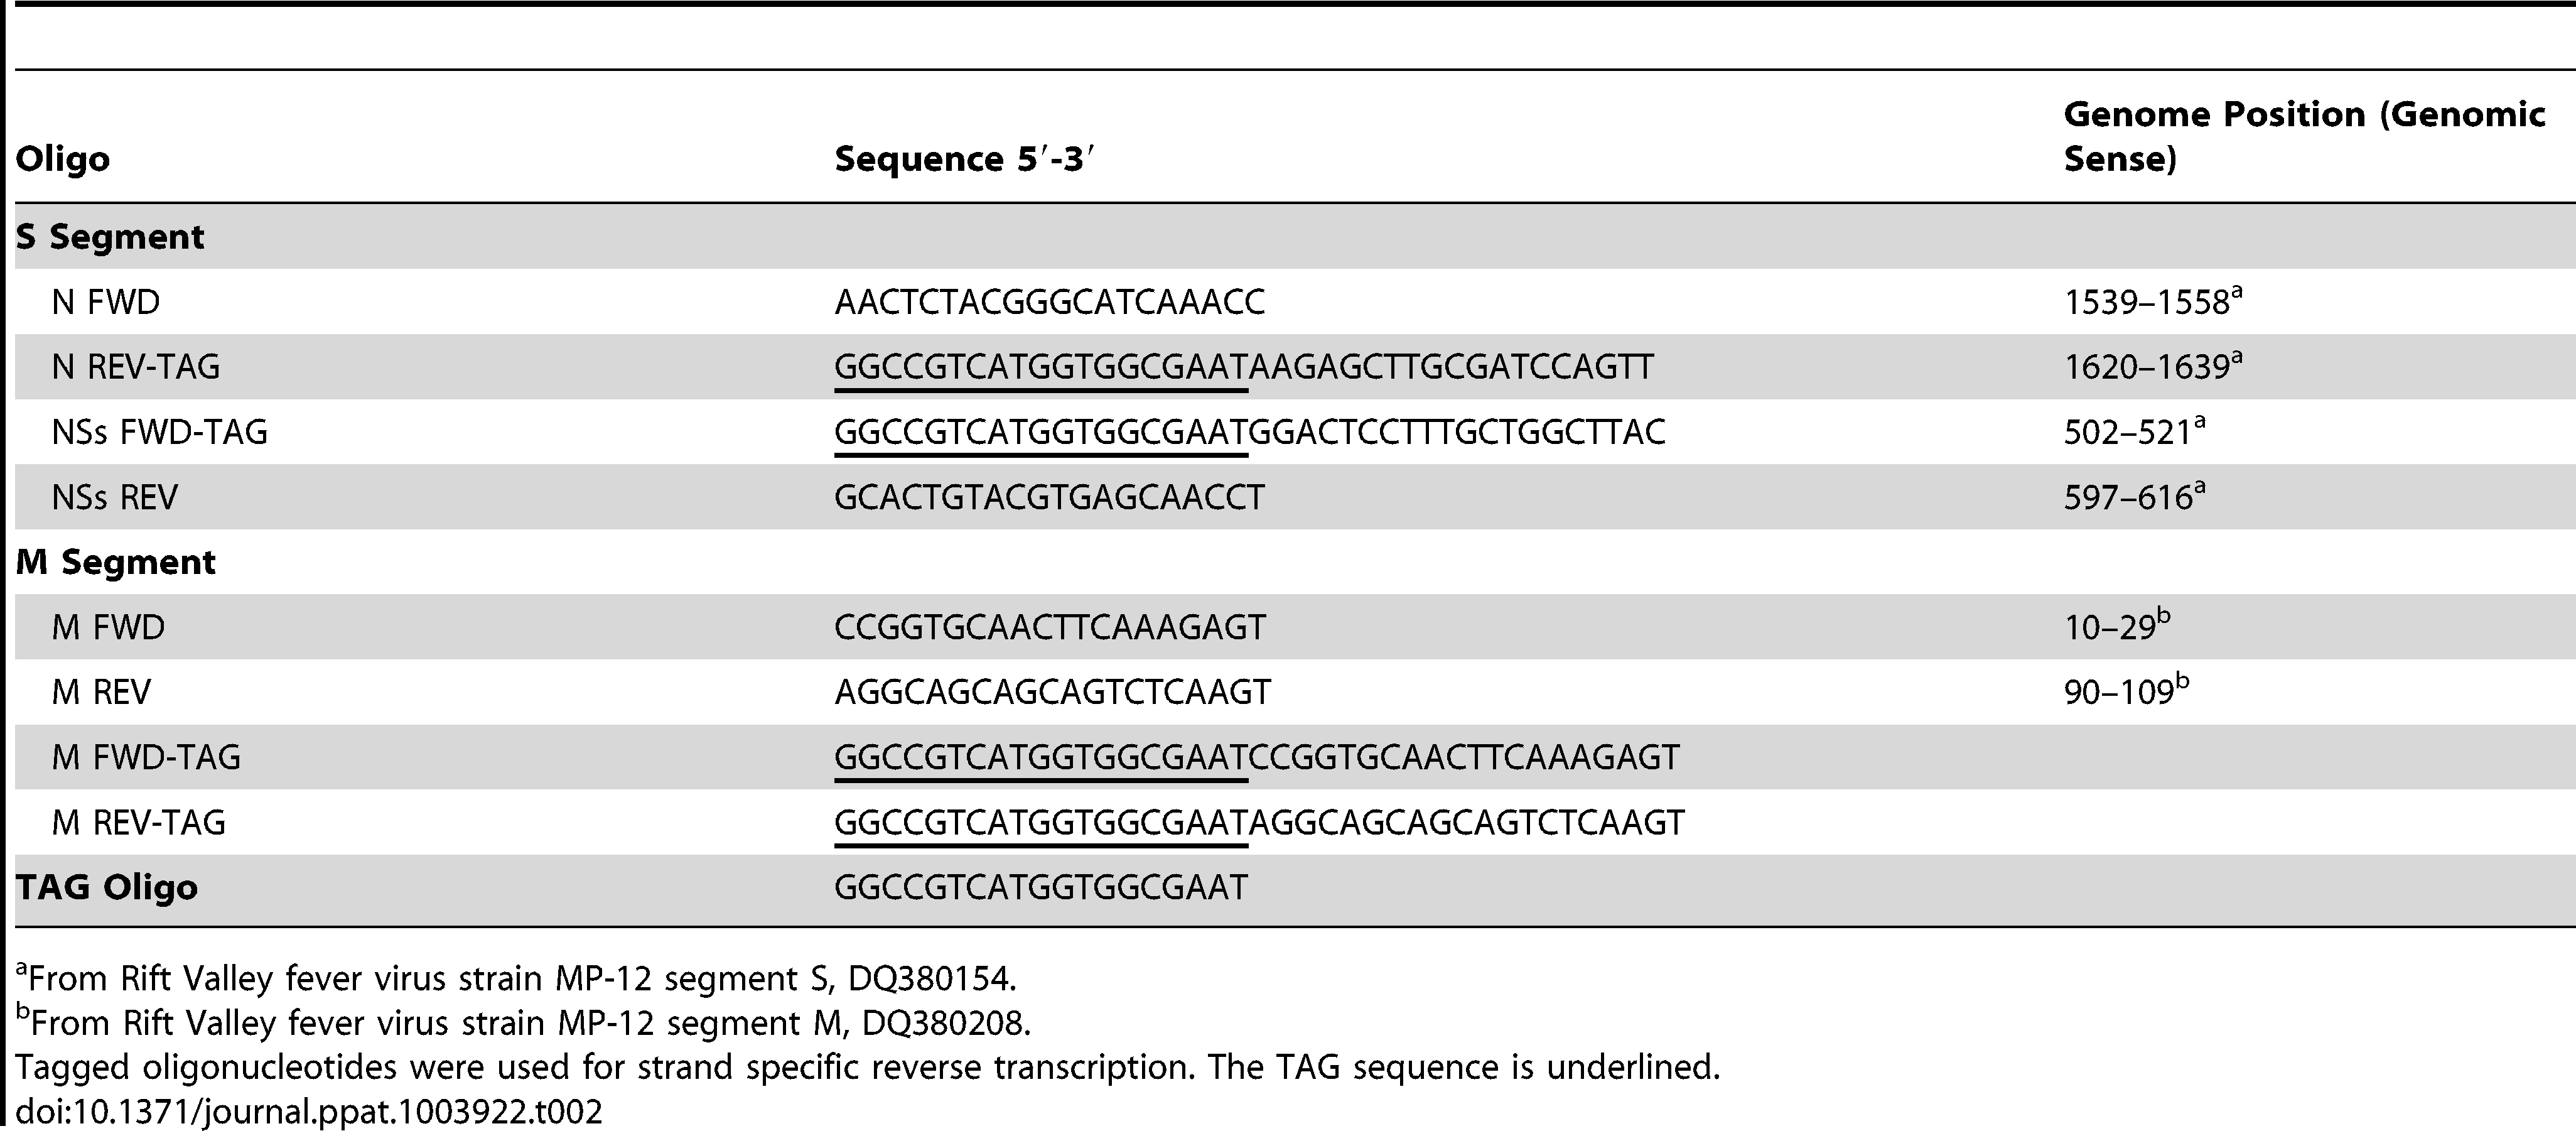 Oligonucleotides used in reverse transcription and qRT-PCR reactions.